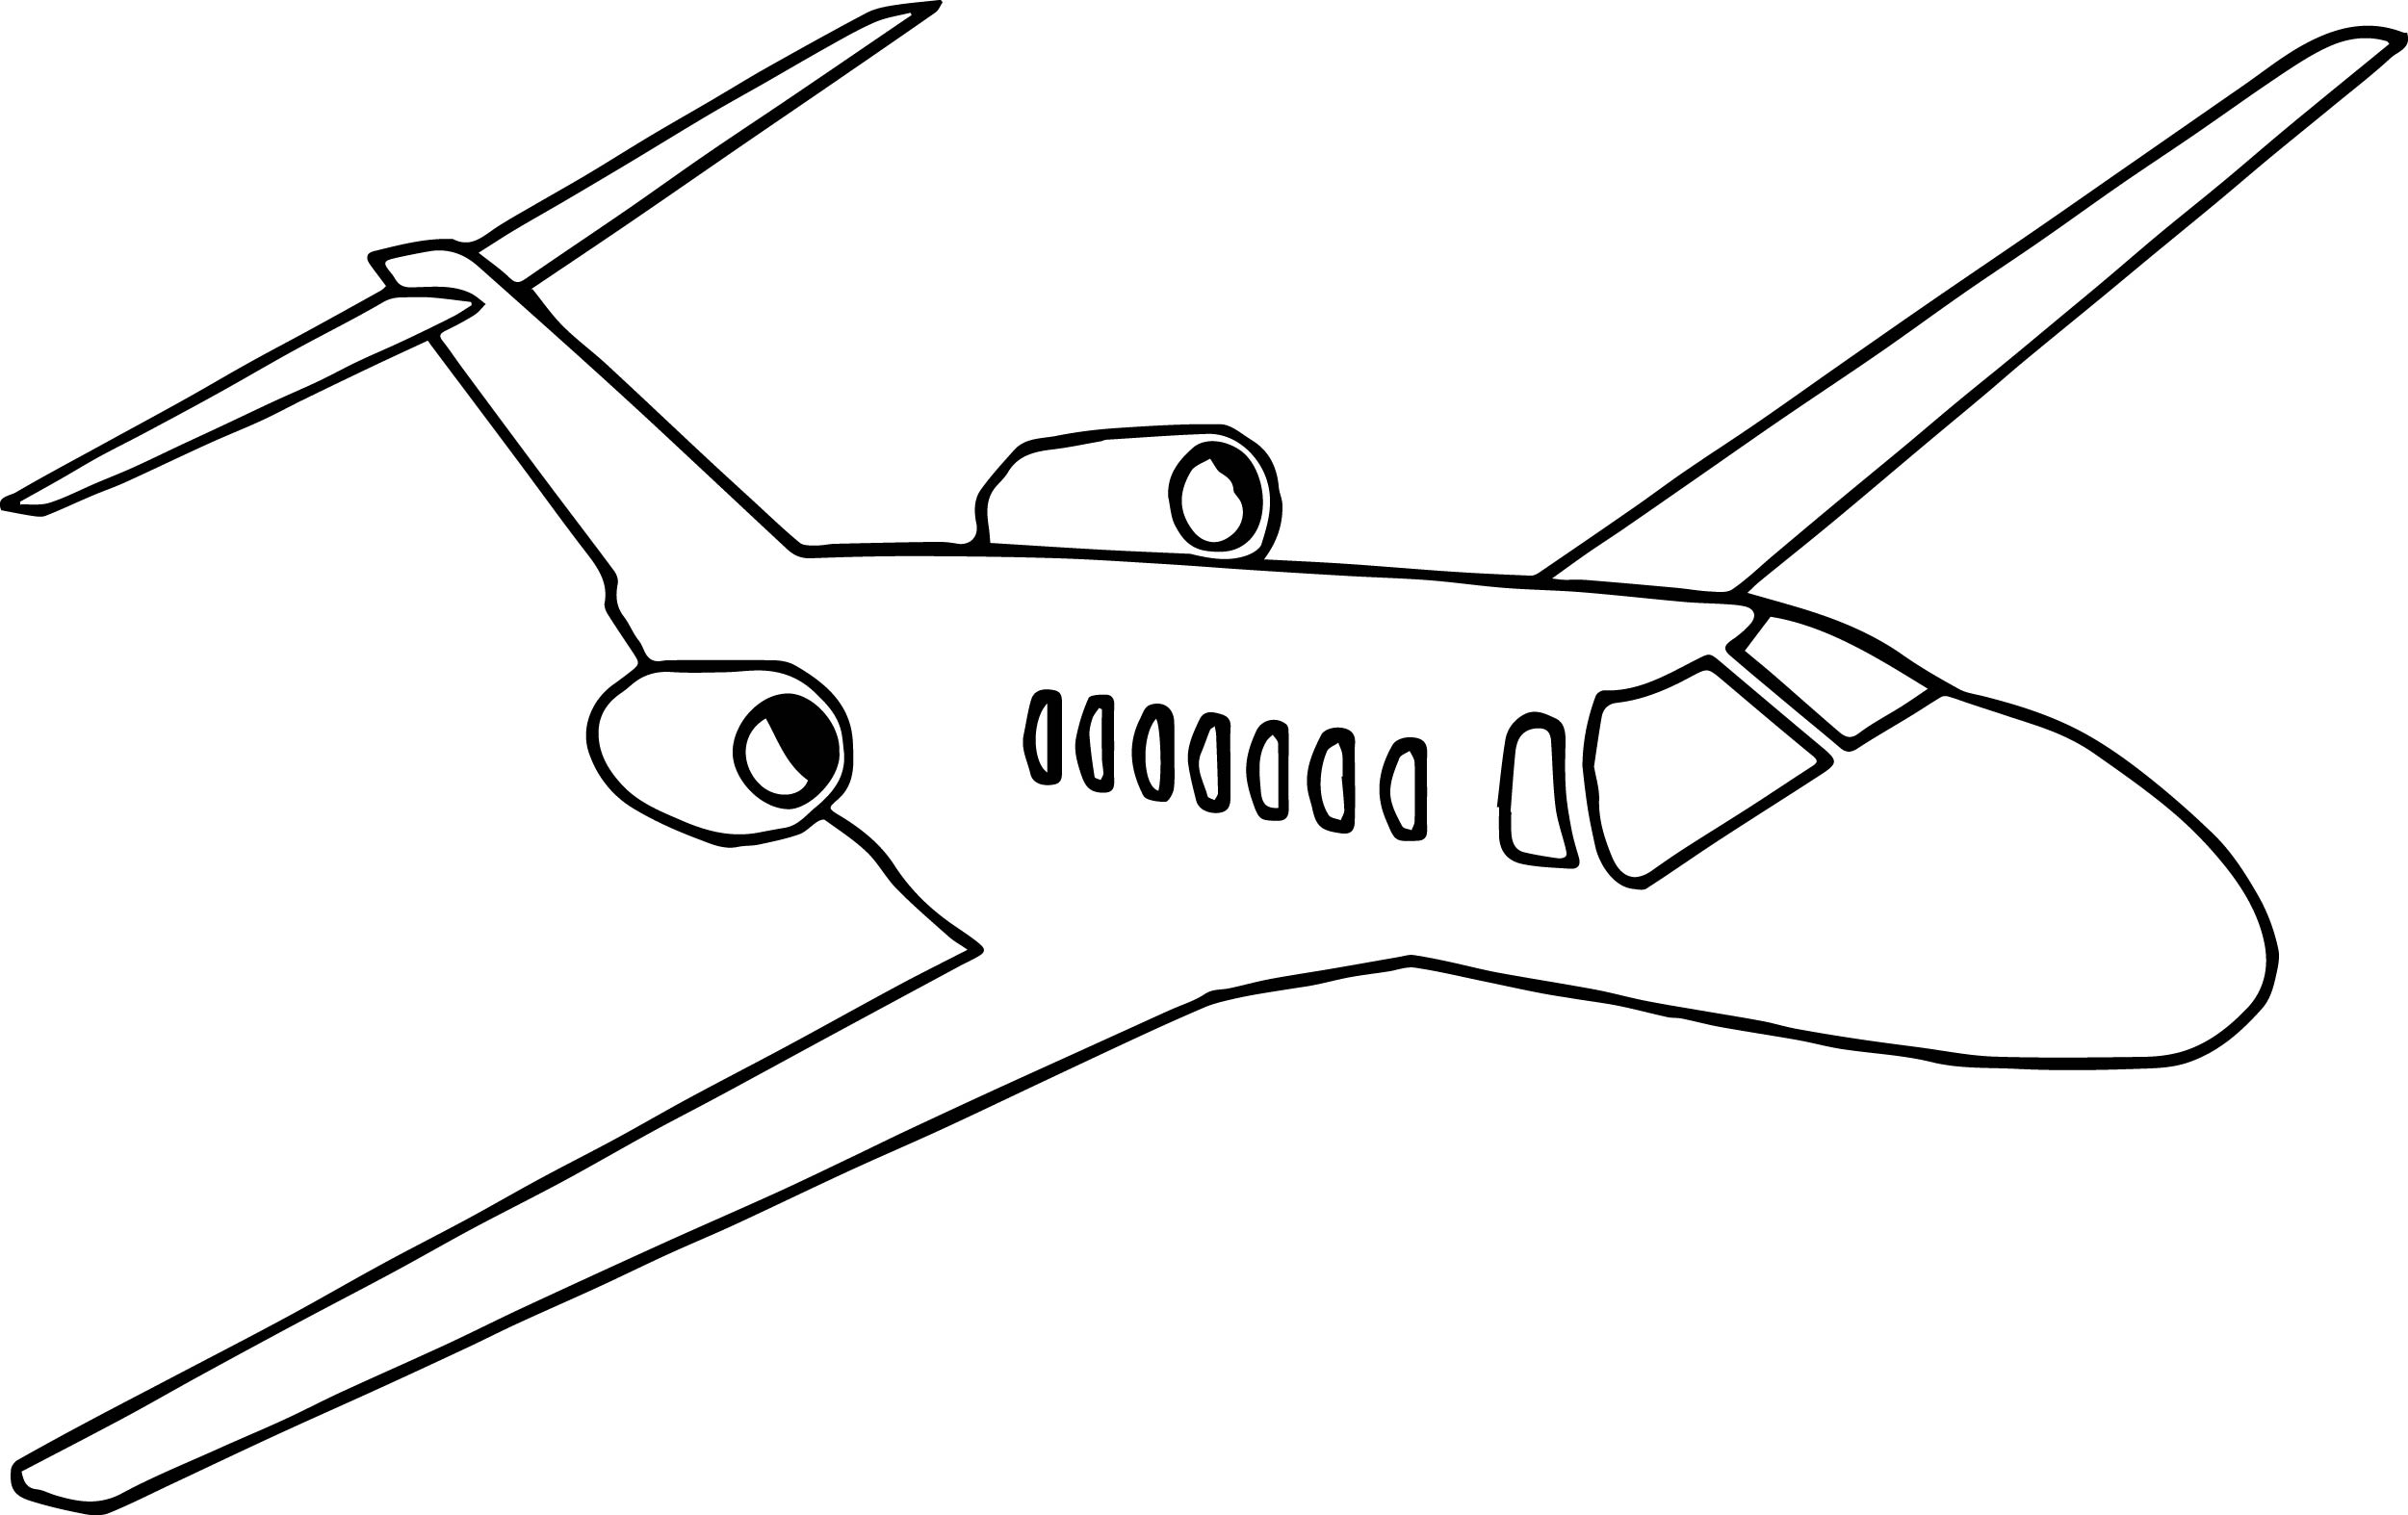 The Color Airplane Coloring Page